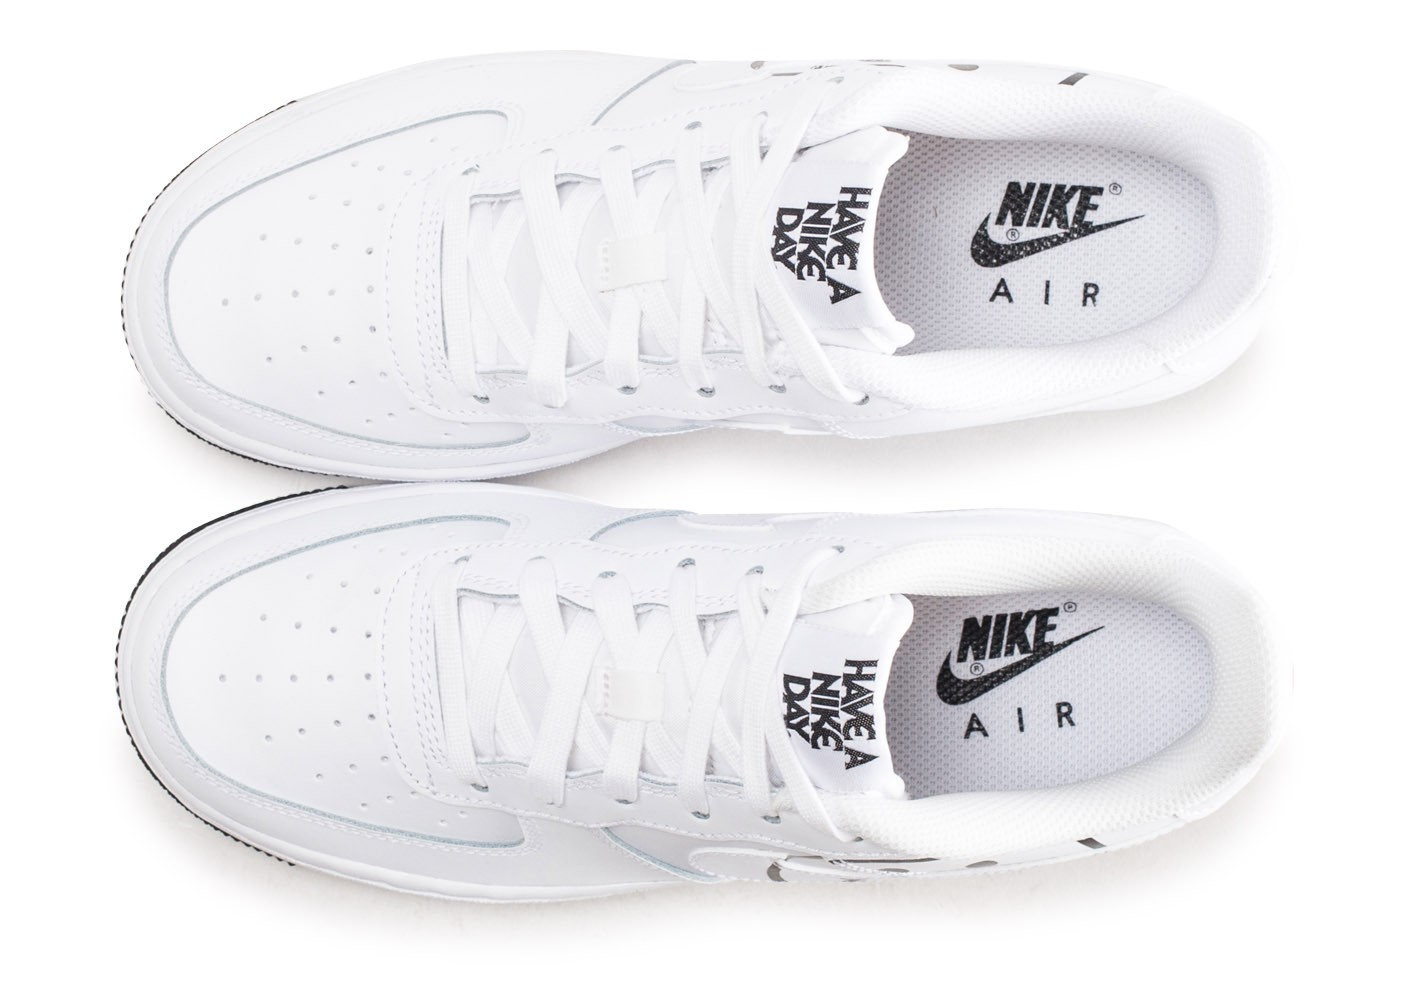 online store b90fe e1228 ... Chaussures Nike Air Force 1 LV8 blanche Have a Nike Day junior vue  arrière ...